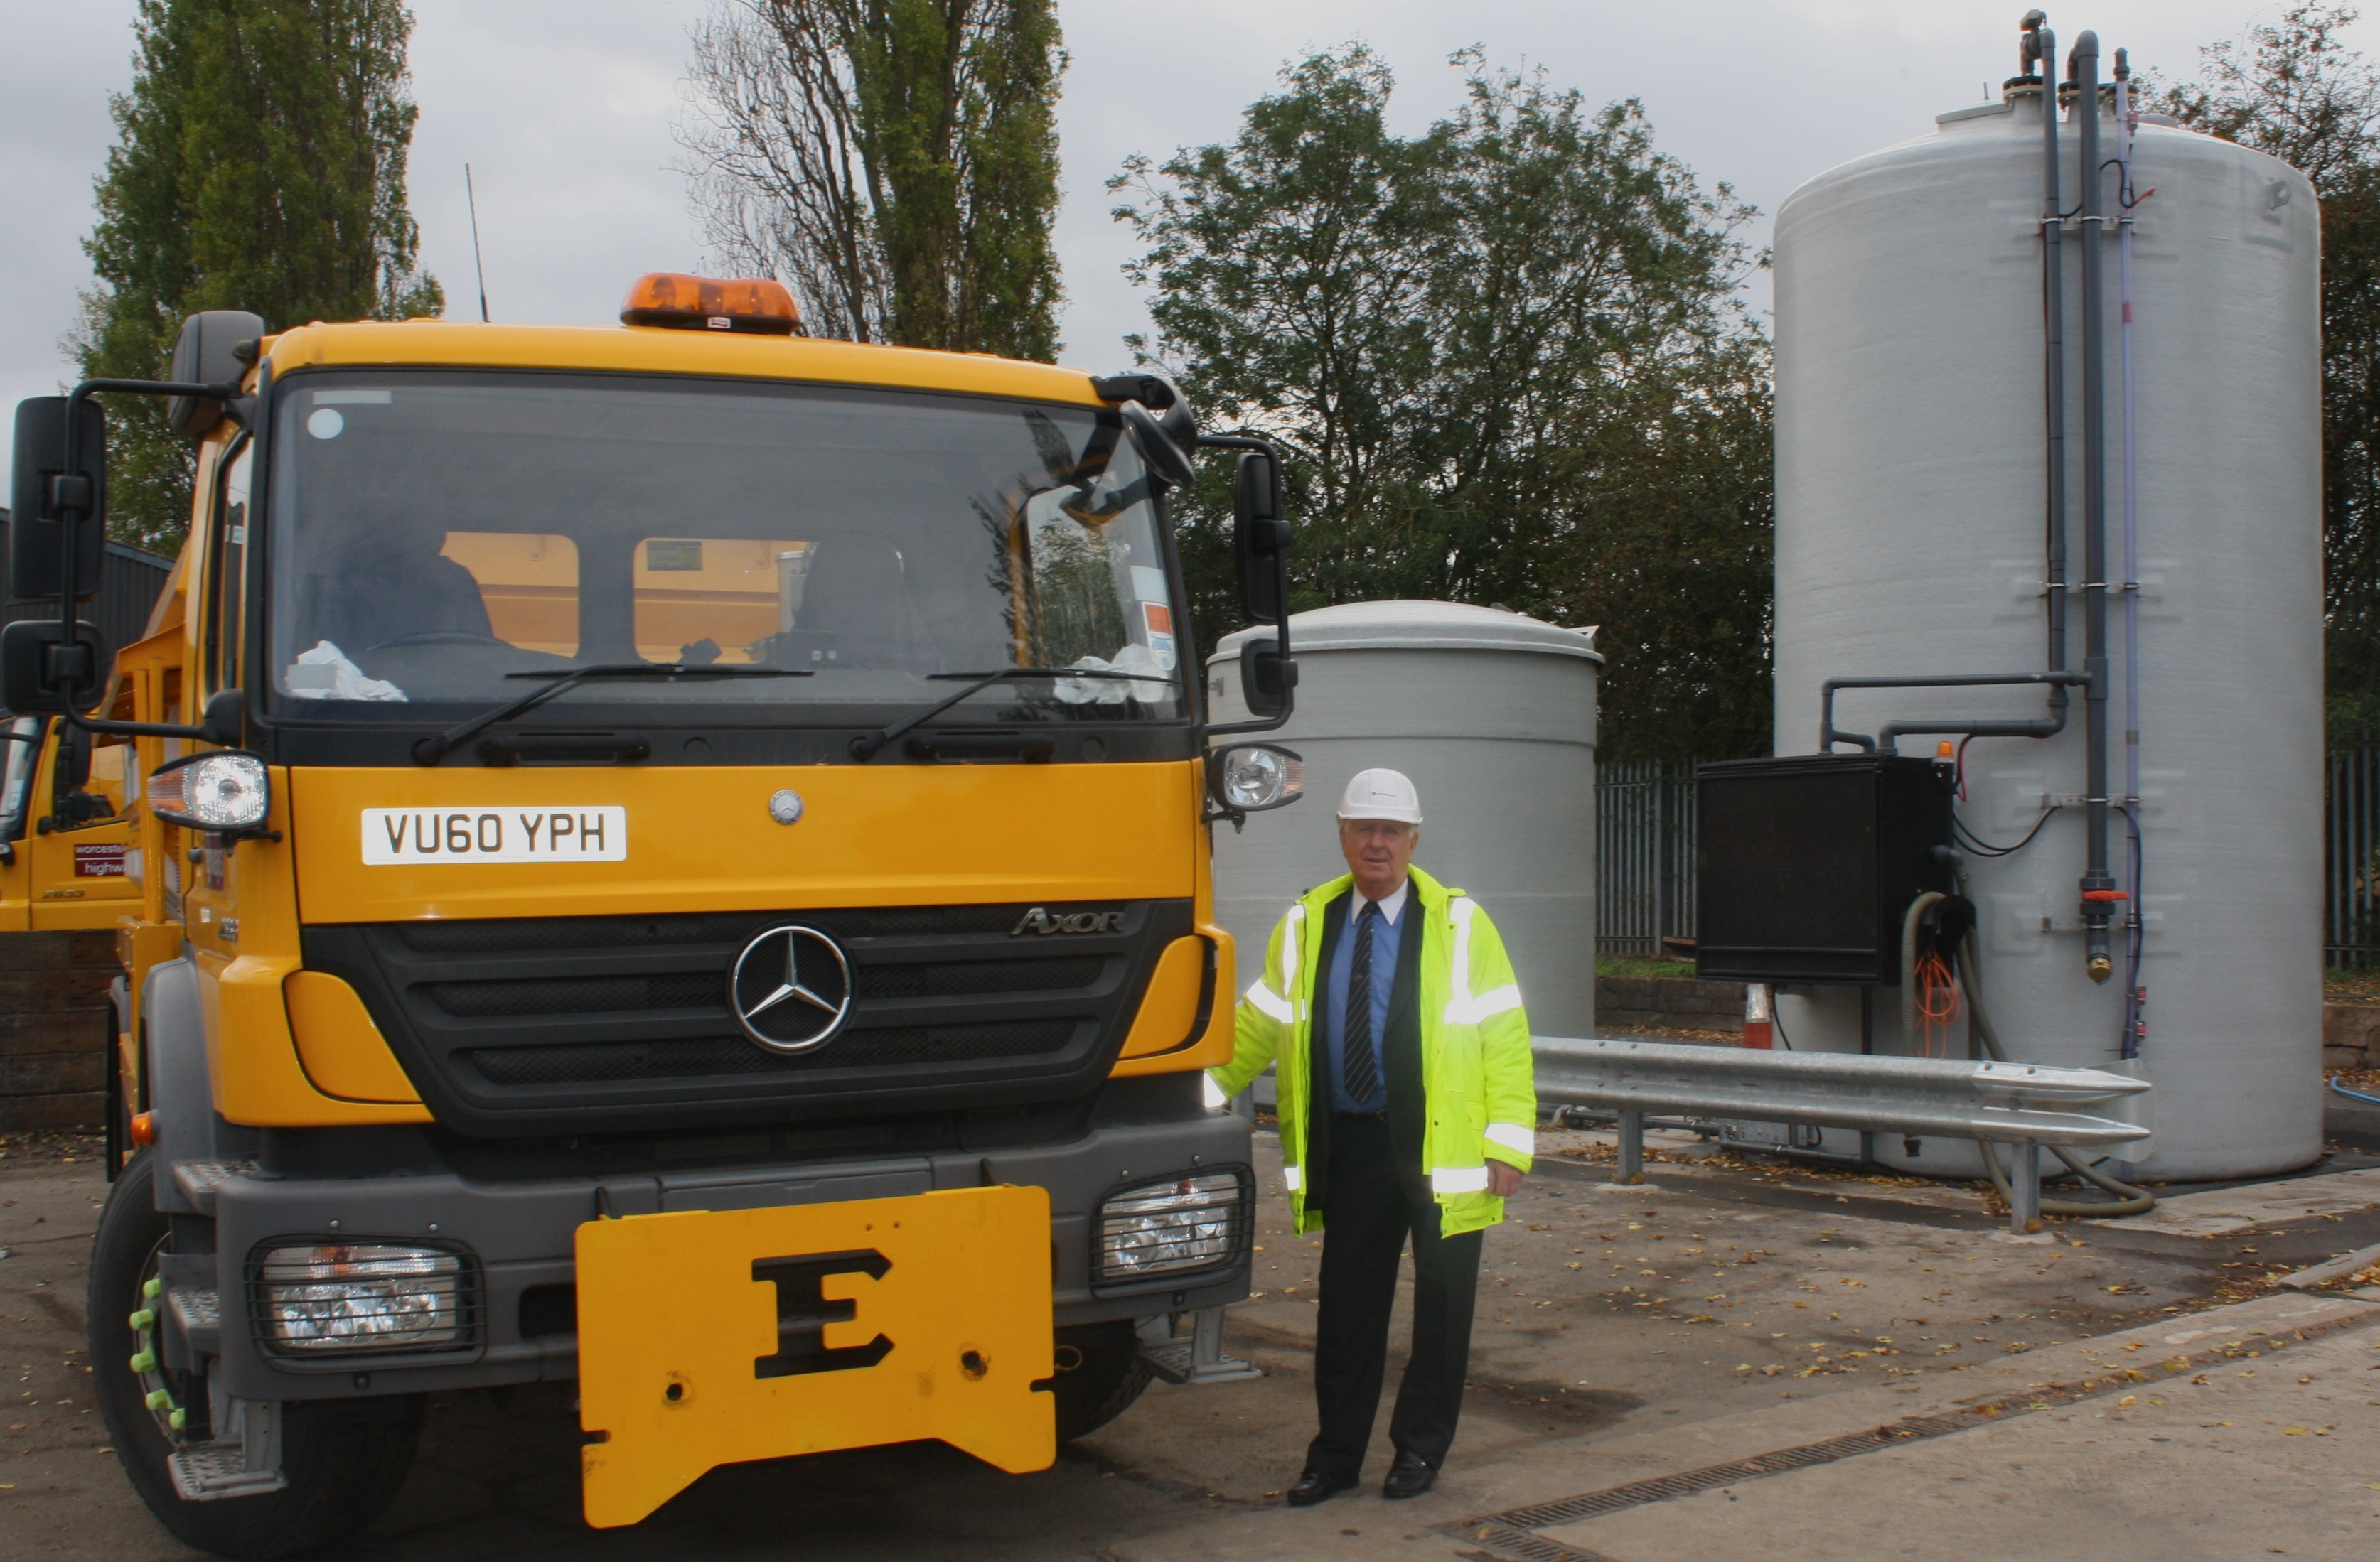 Cllr John Smith OBE, County Council Cabinet Member for Highways, next to a gritter and one of the brine tanks, which stores the solution used to employ the 'pre-wet' technology